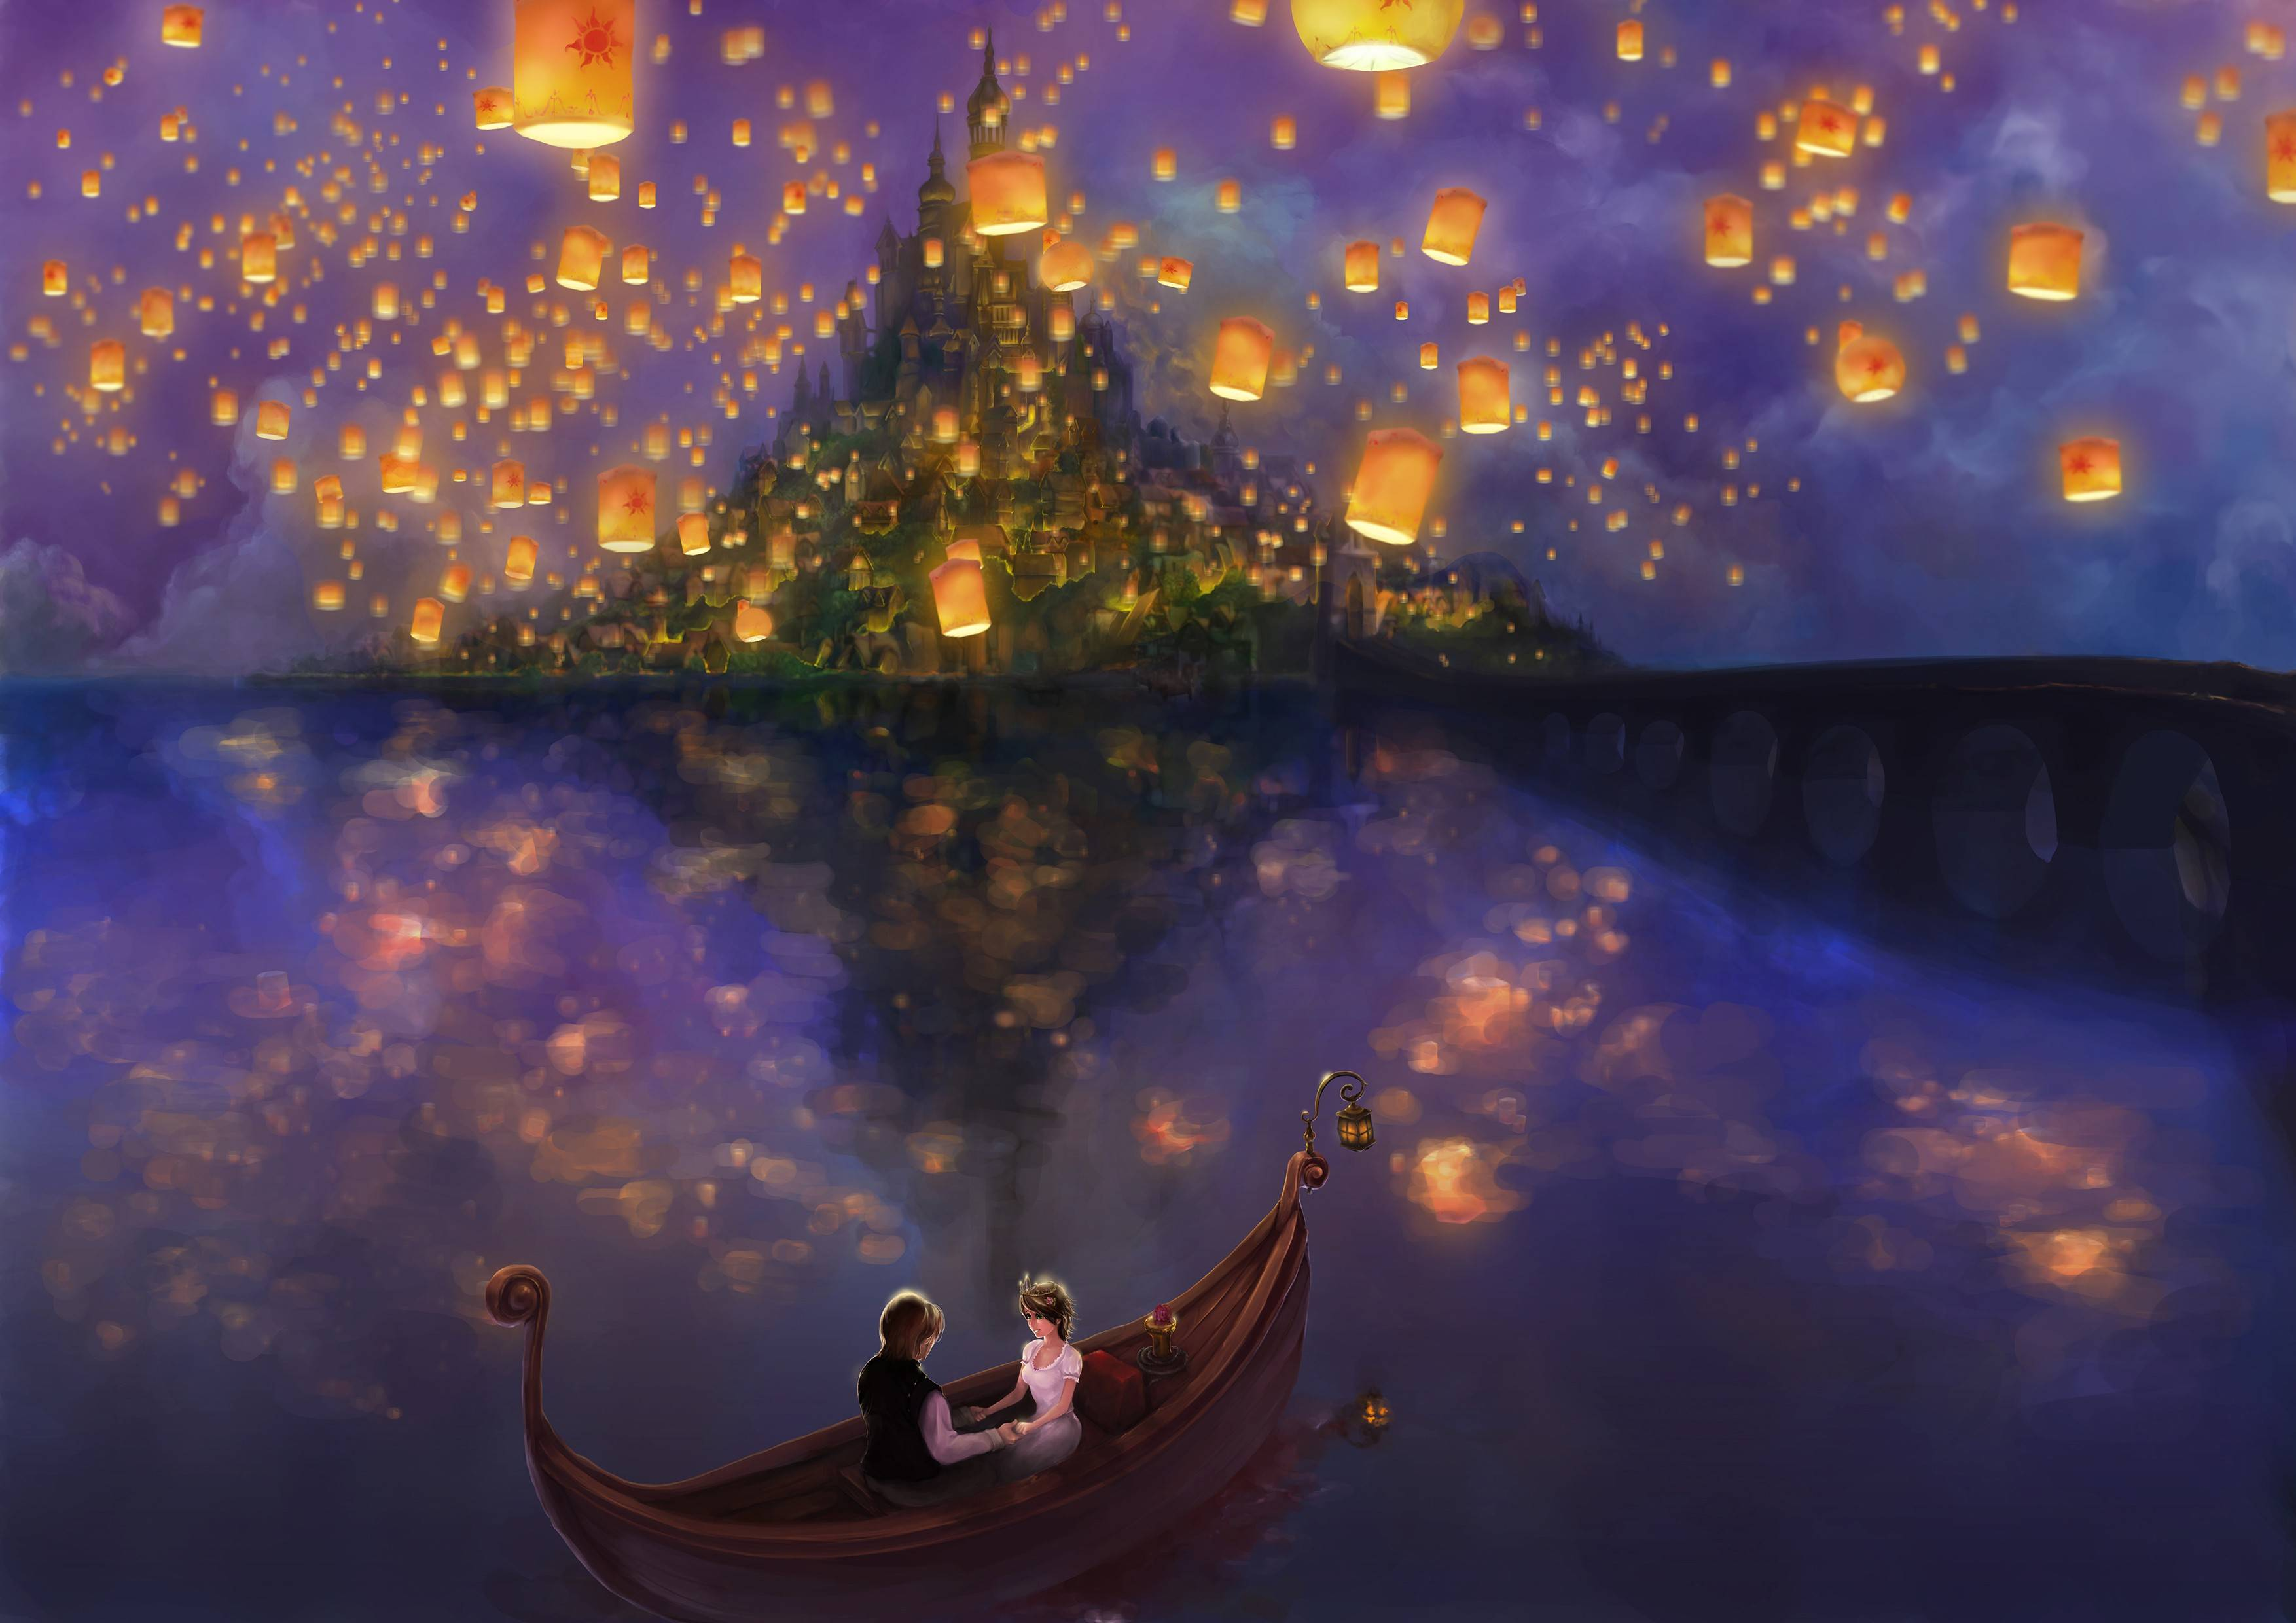 HD Disney Tangled Backgrounds 3508x2480